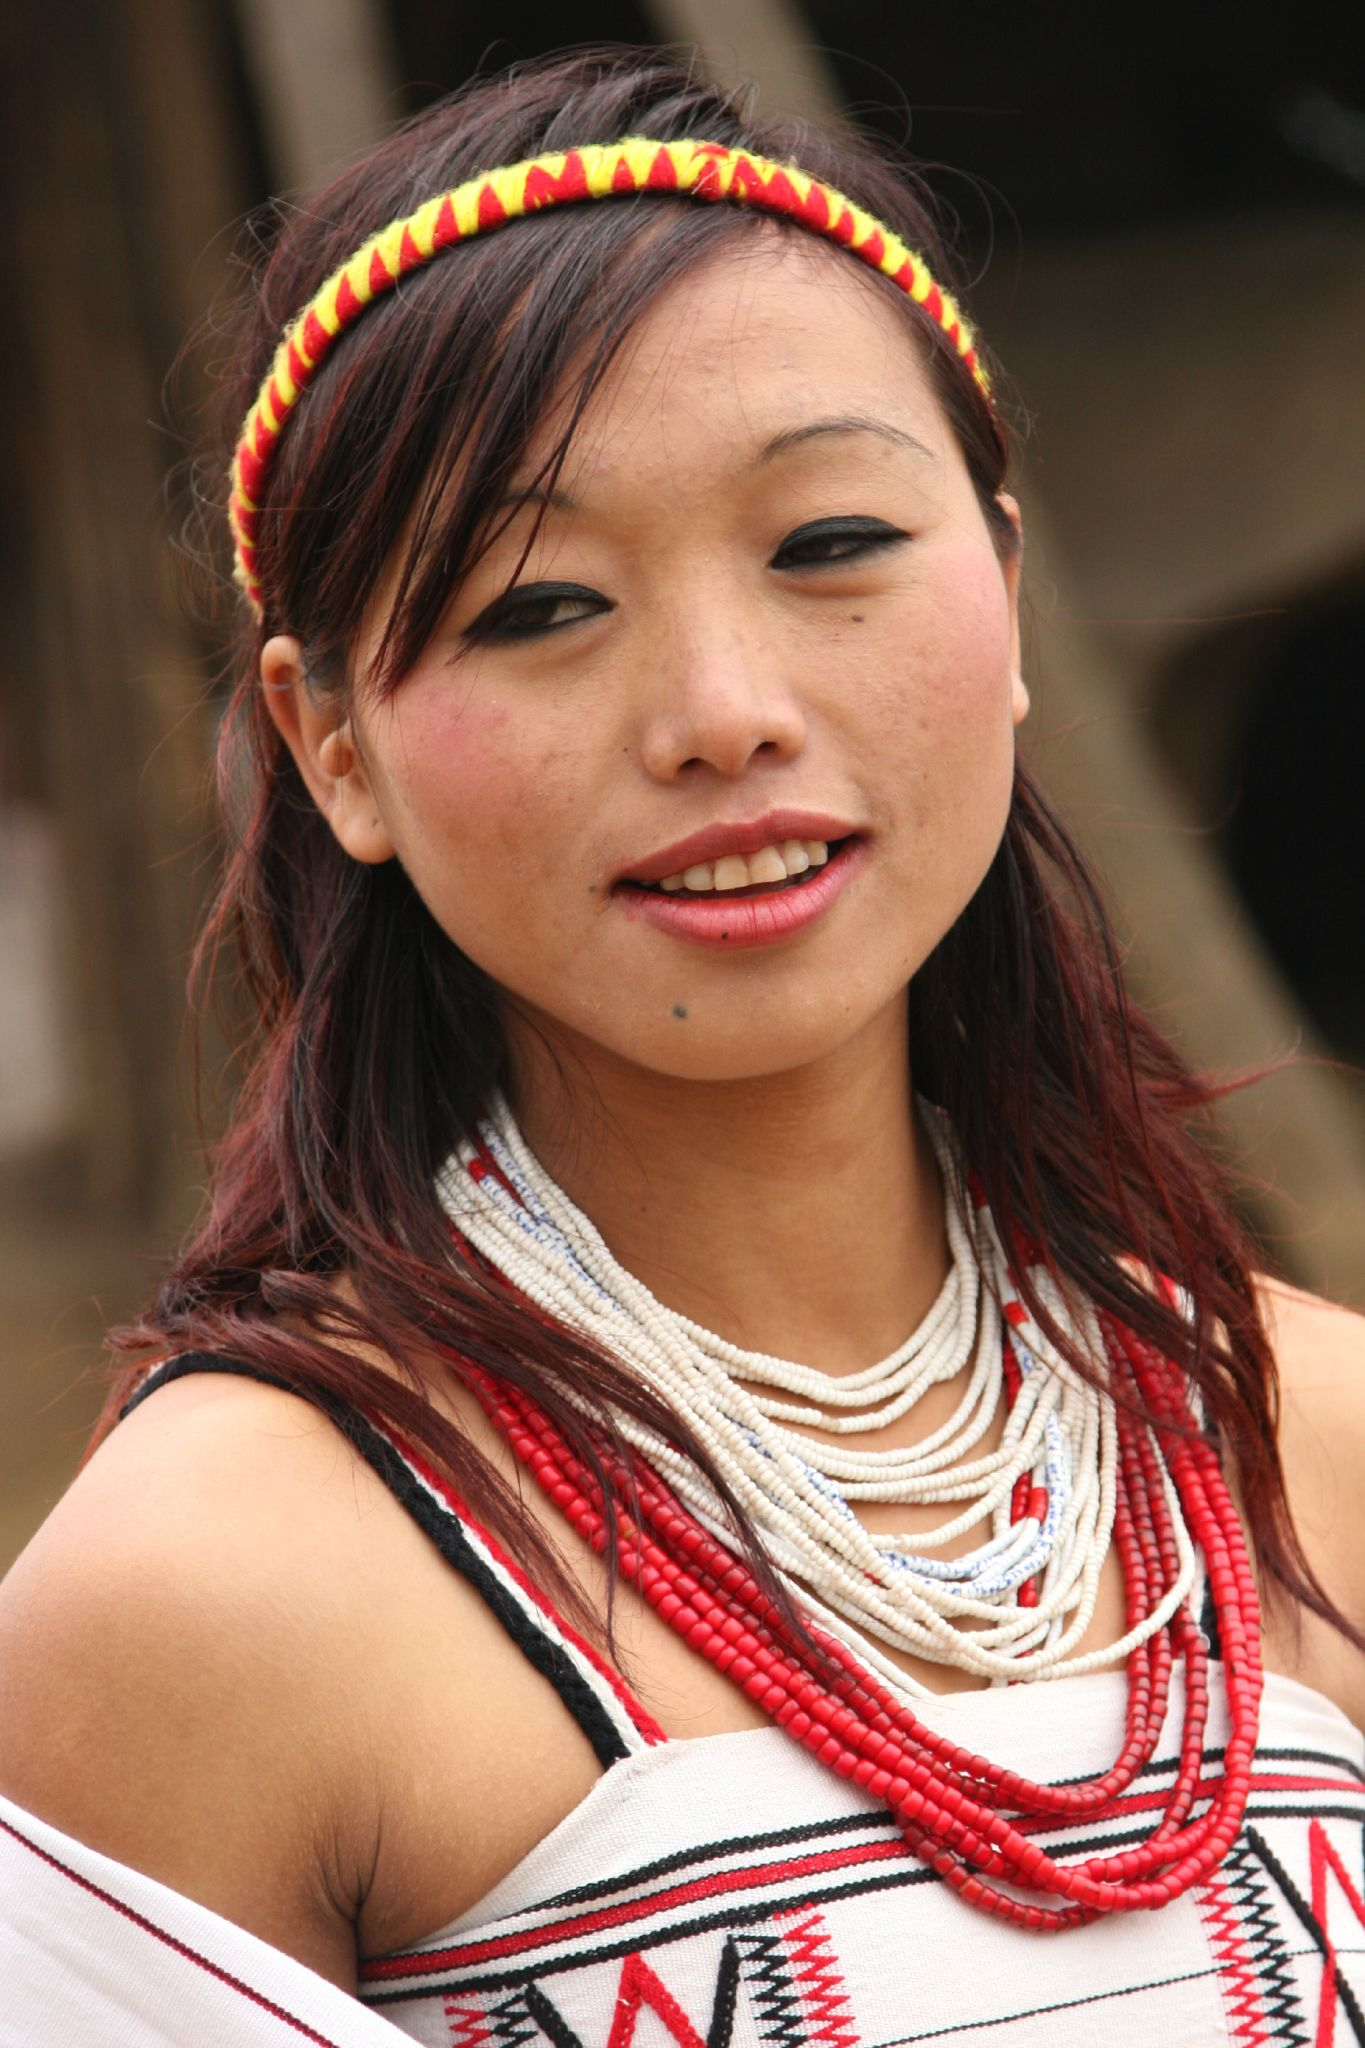 Nagaland hot girls picture nudes pictures